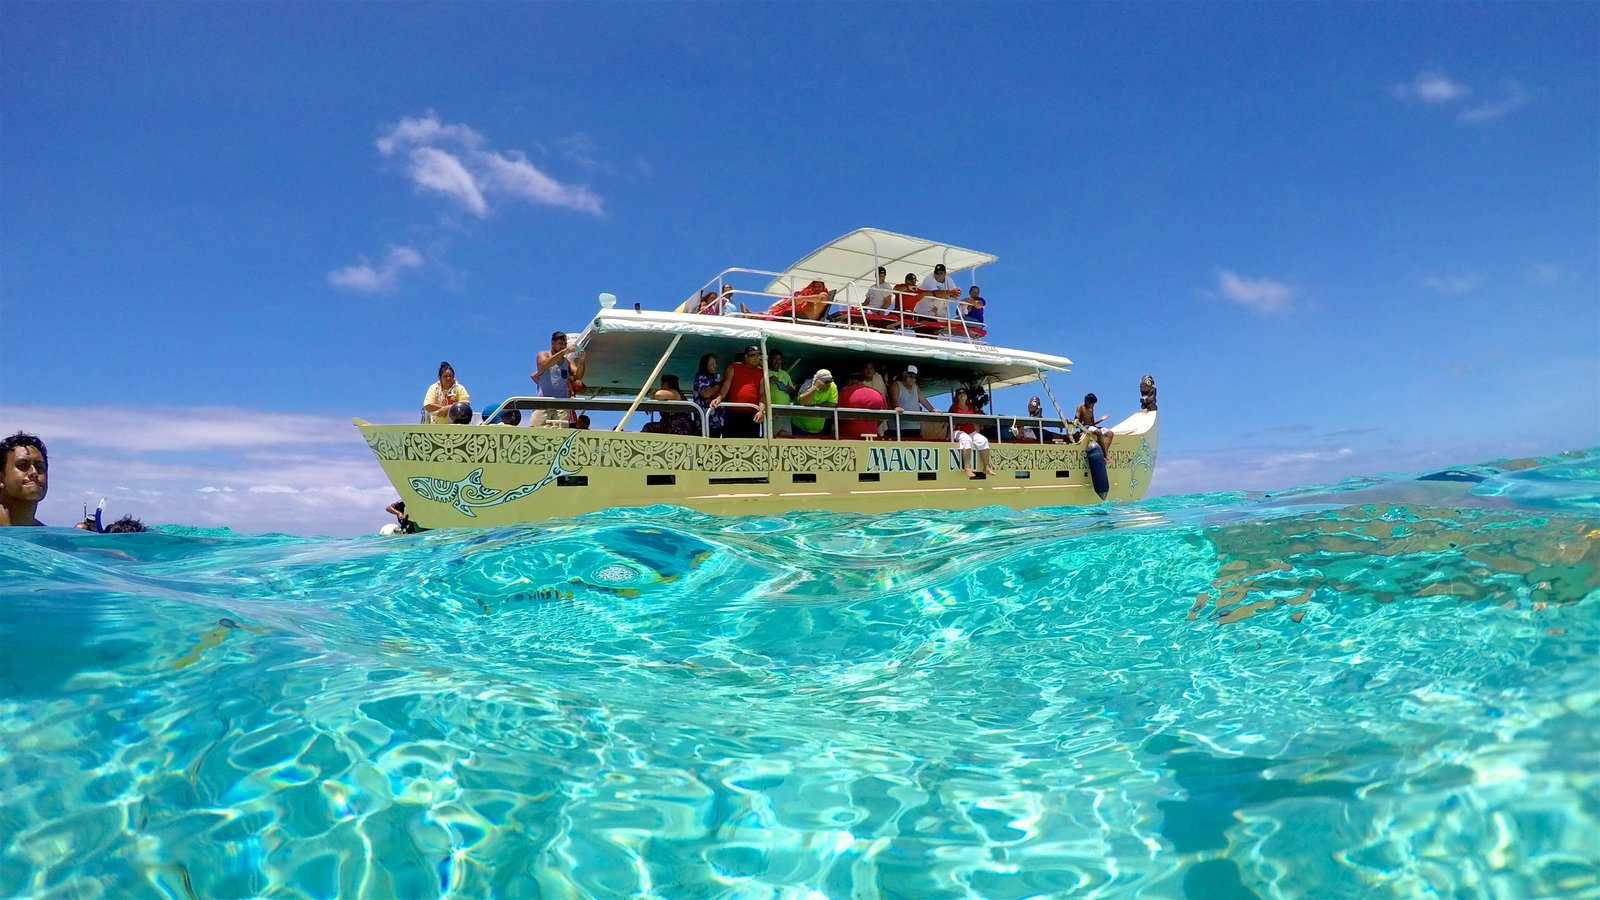 Bora Bora featuring boating and tropical scenes as well as a small group of people